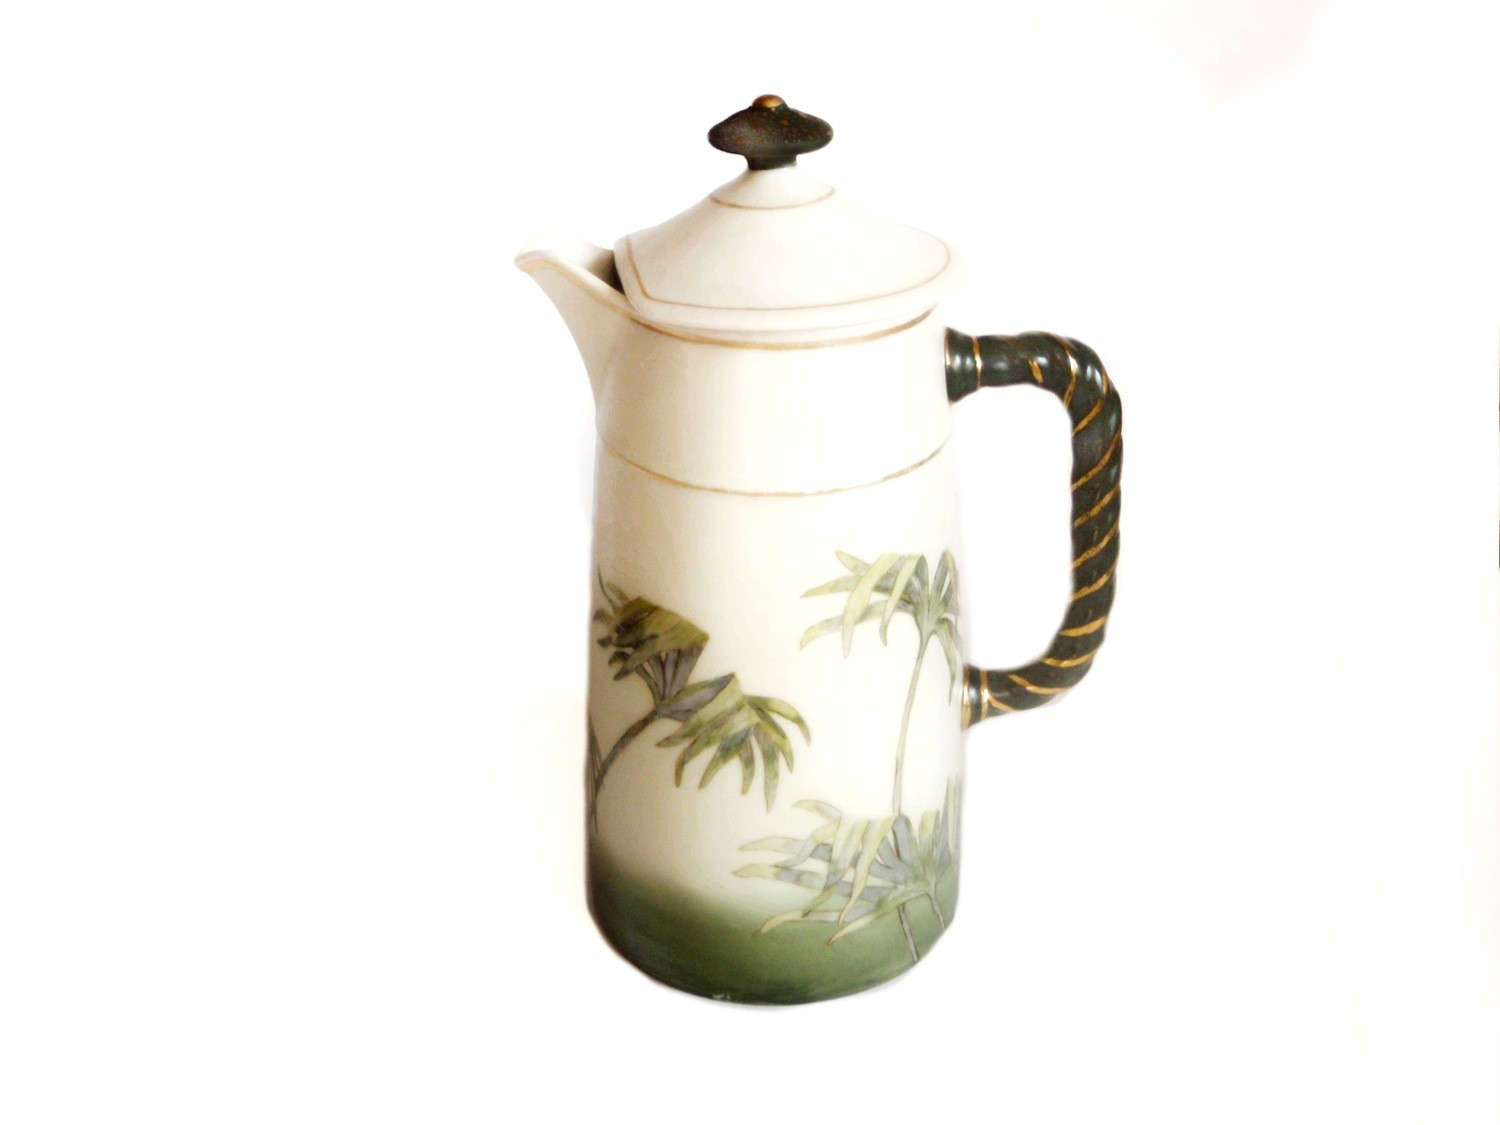 Antique Limoges Porcelain Palm Frond Pitcher - French Barware